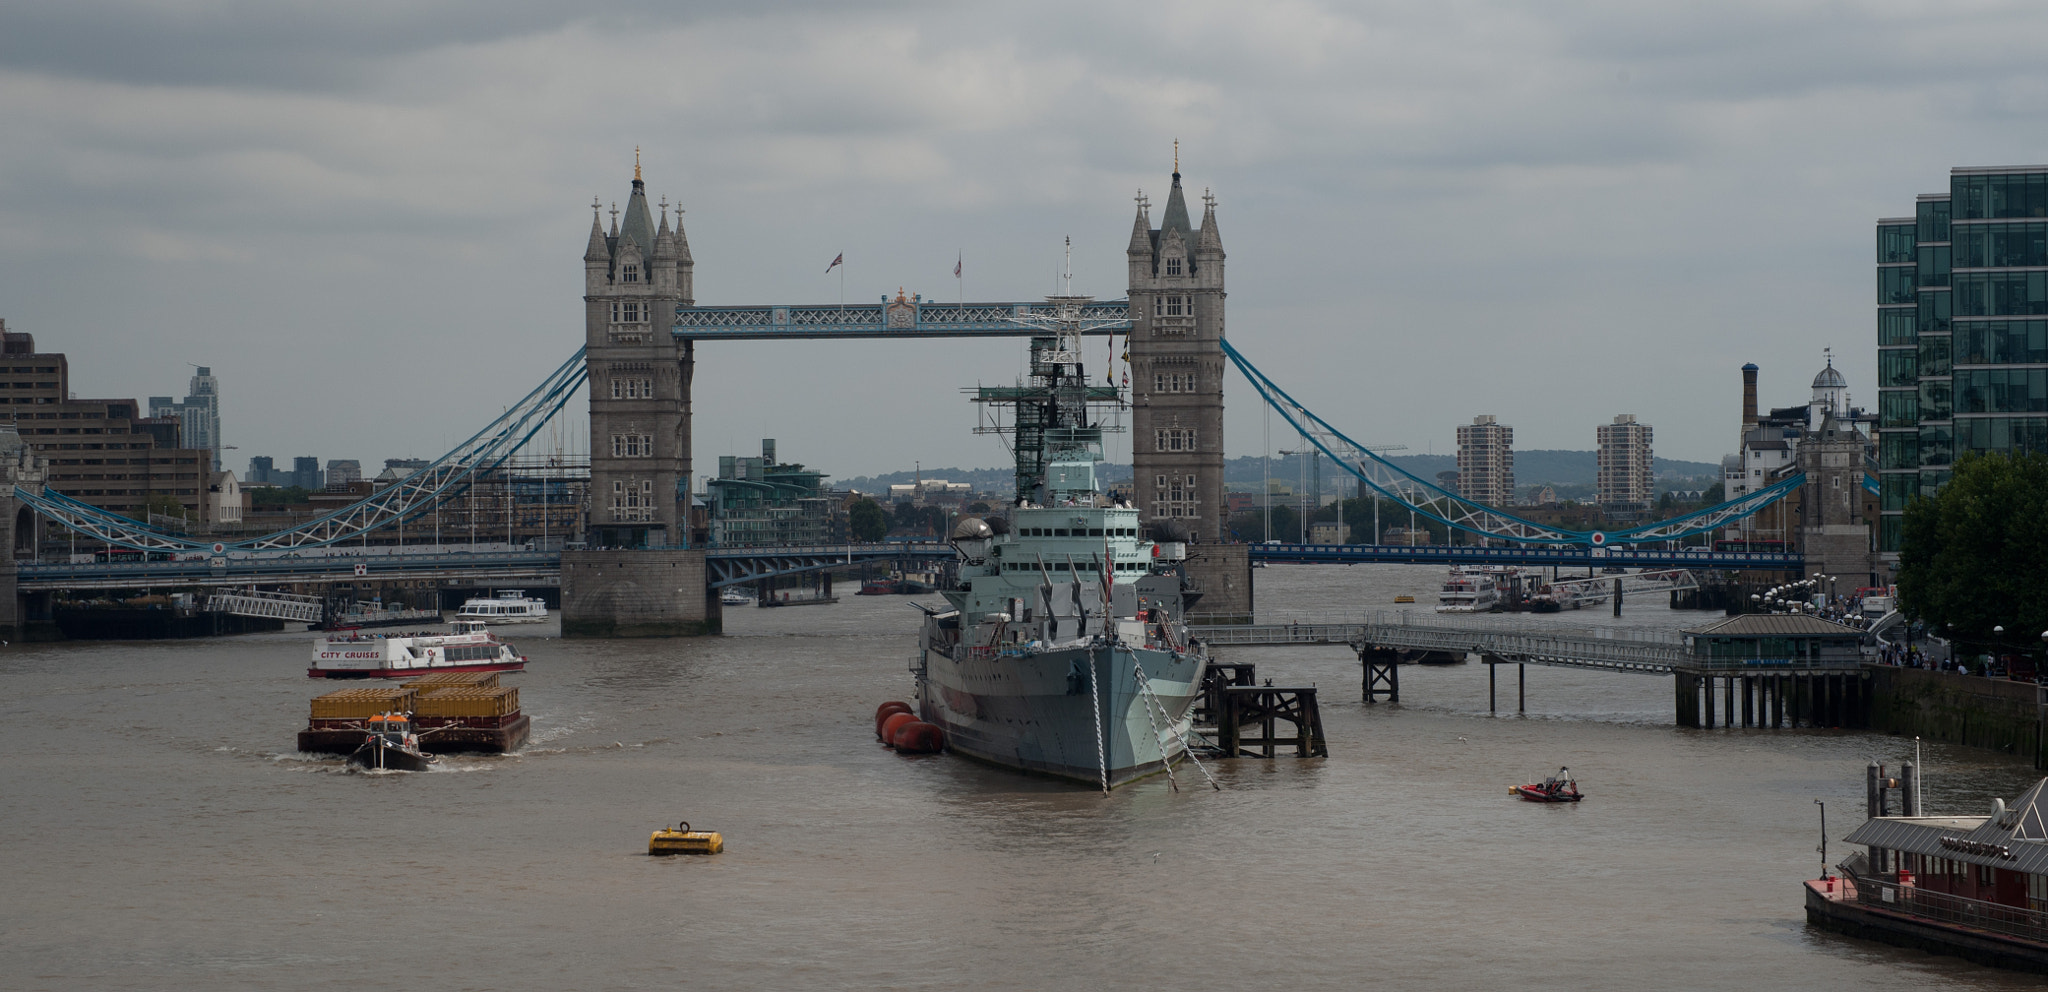 Photograph The Thames by Marilyn Sonnie on 500px